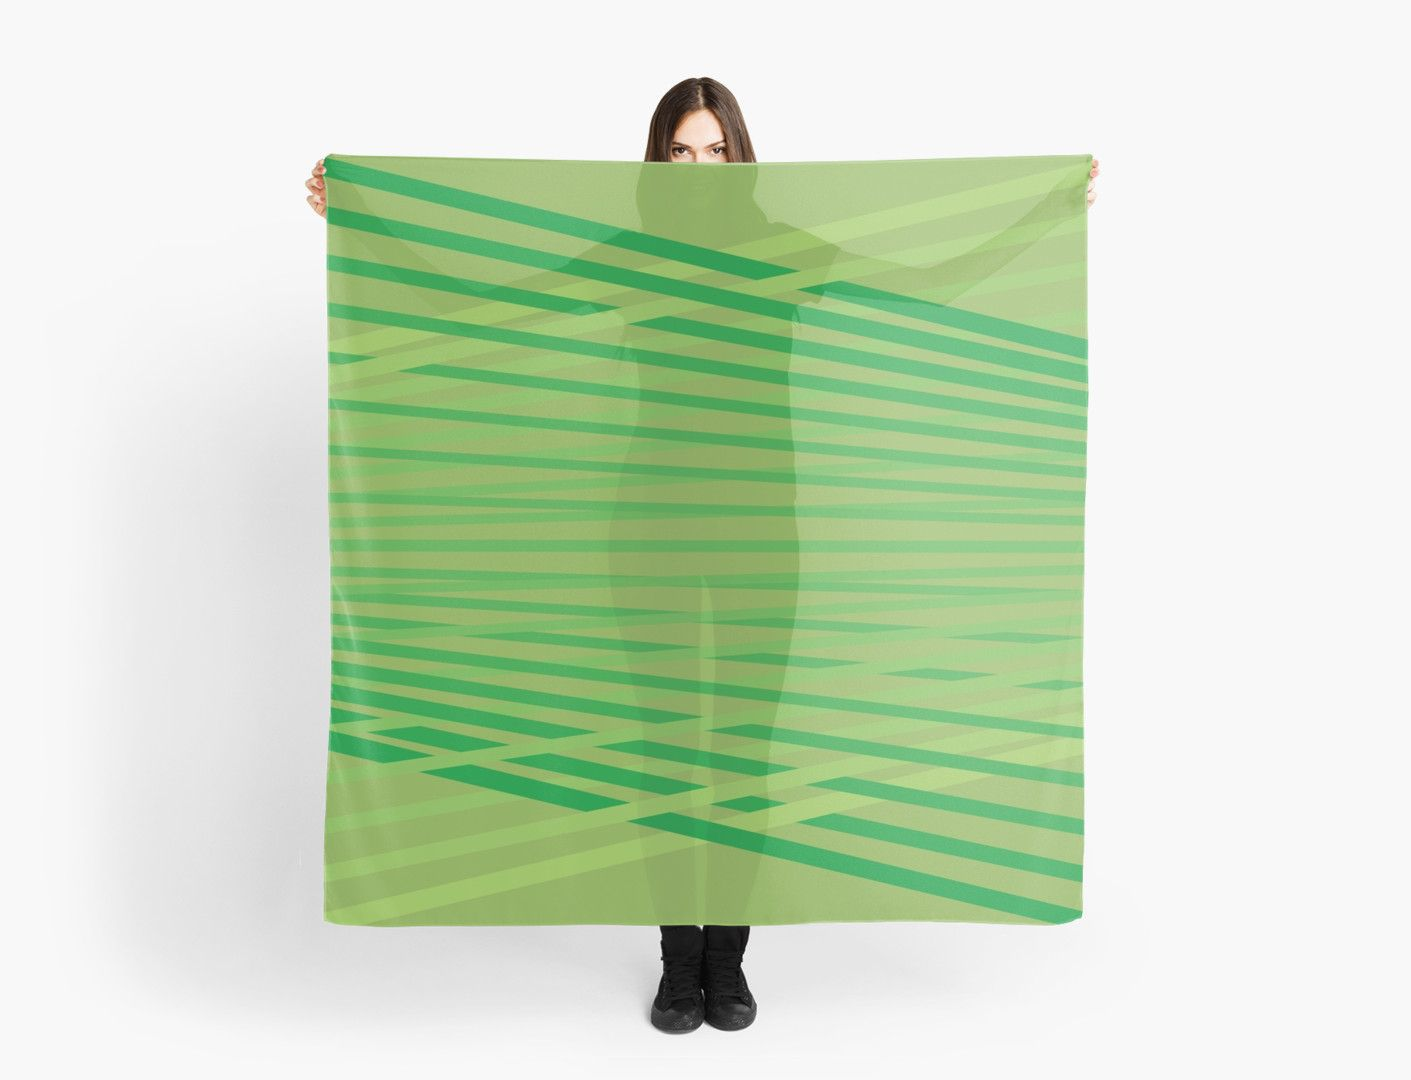 Green diagonals., in greenery green. • Also buy this artwork on apparel, stickers, phone cases, and more.